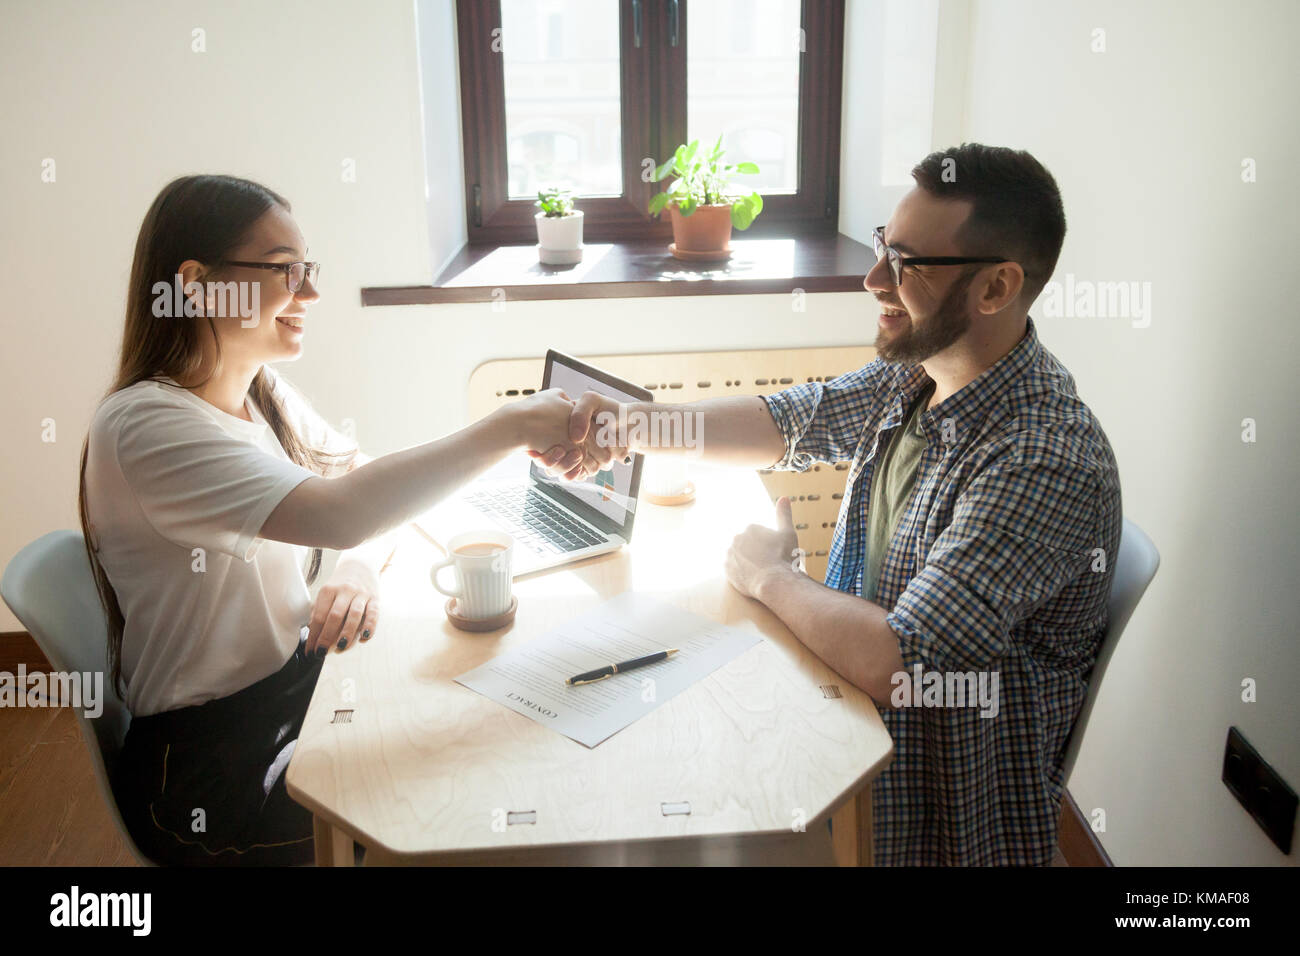 Friendly millennial businessman and businesswoman handshaking over office table after signing business contract. - Stock Image